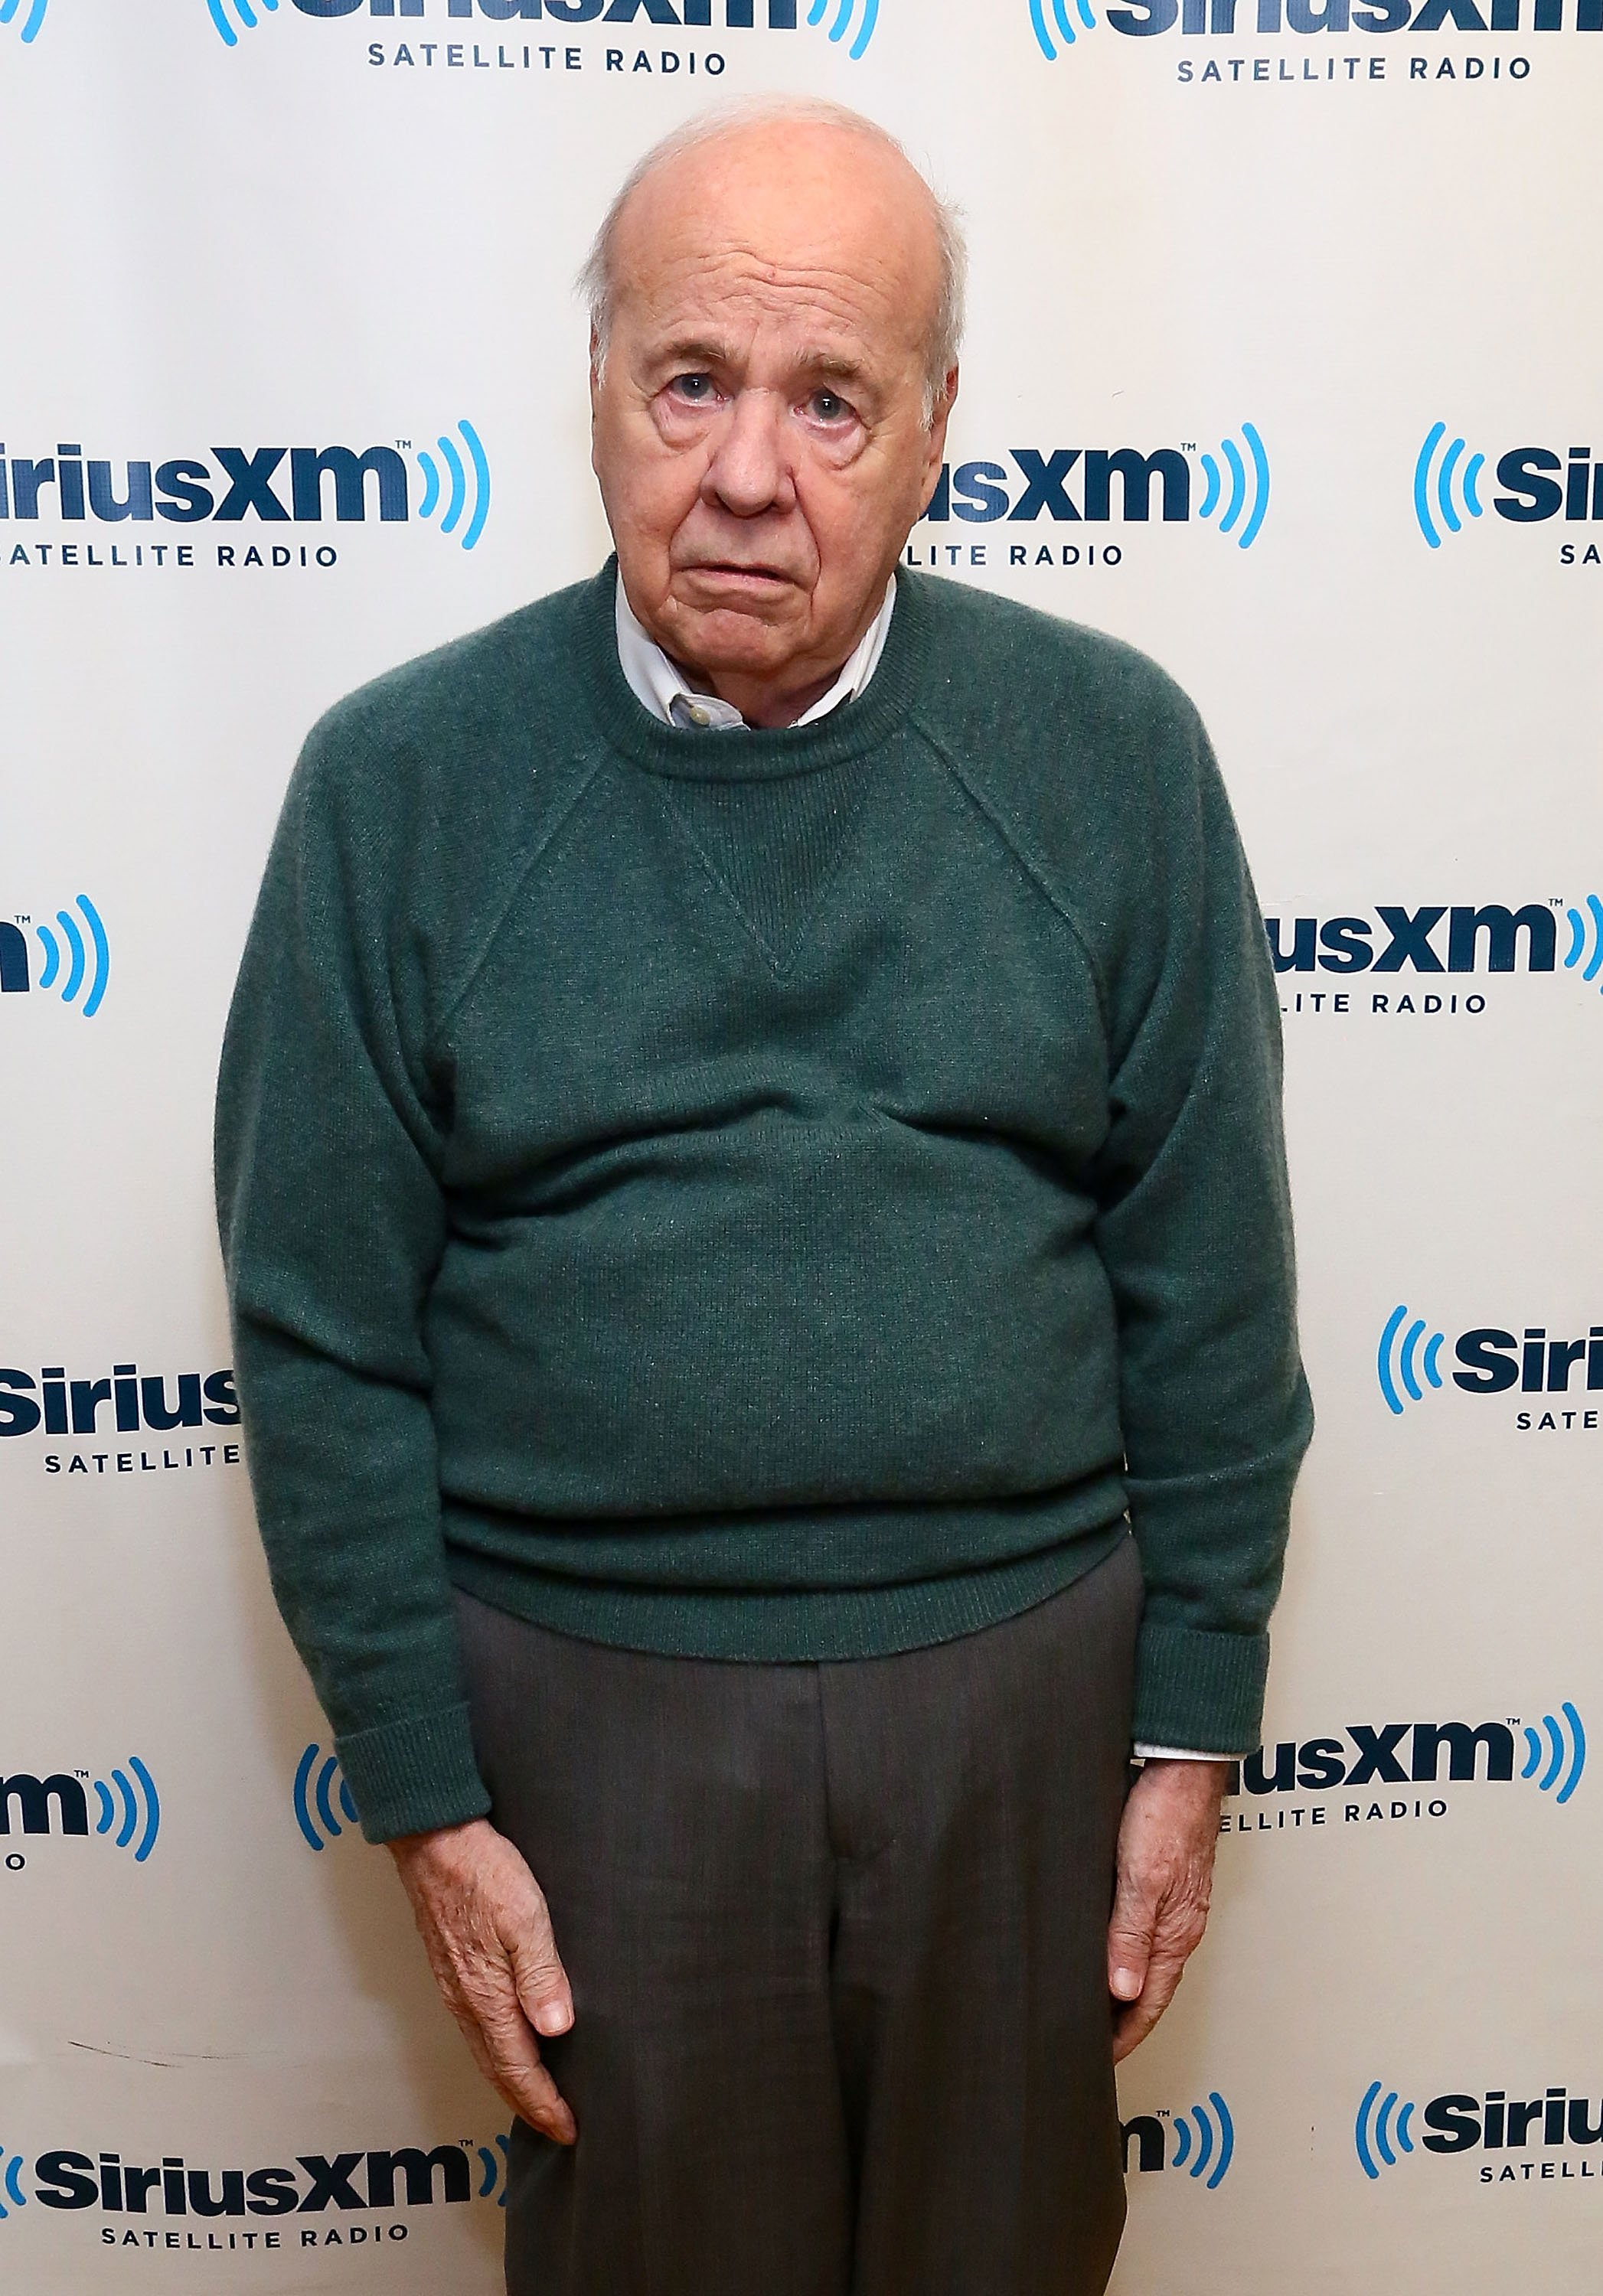 Tim Conway at the SiriusXM Studios on October 28, 2013 in New York City | Source: Getty Images